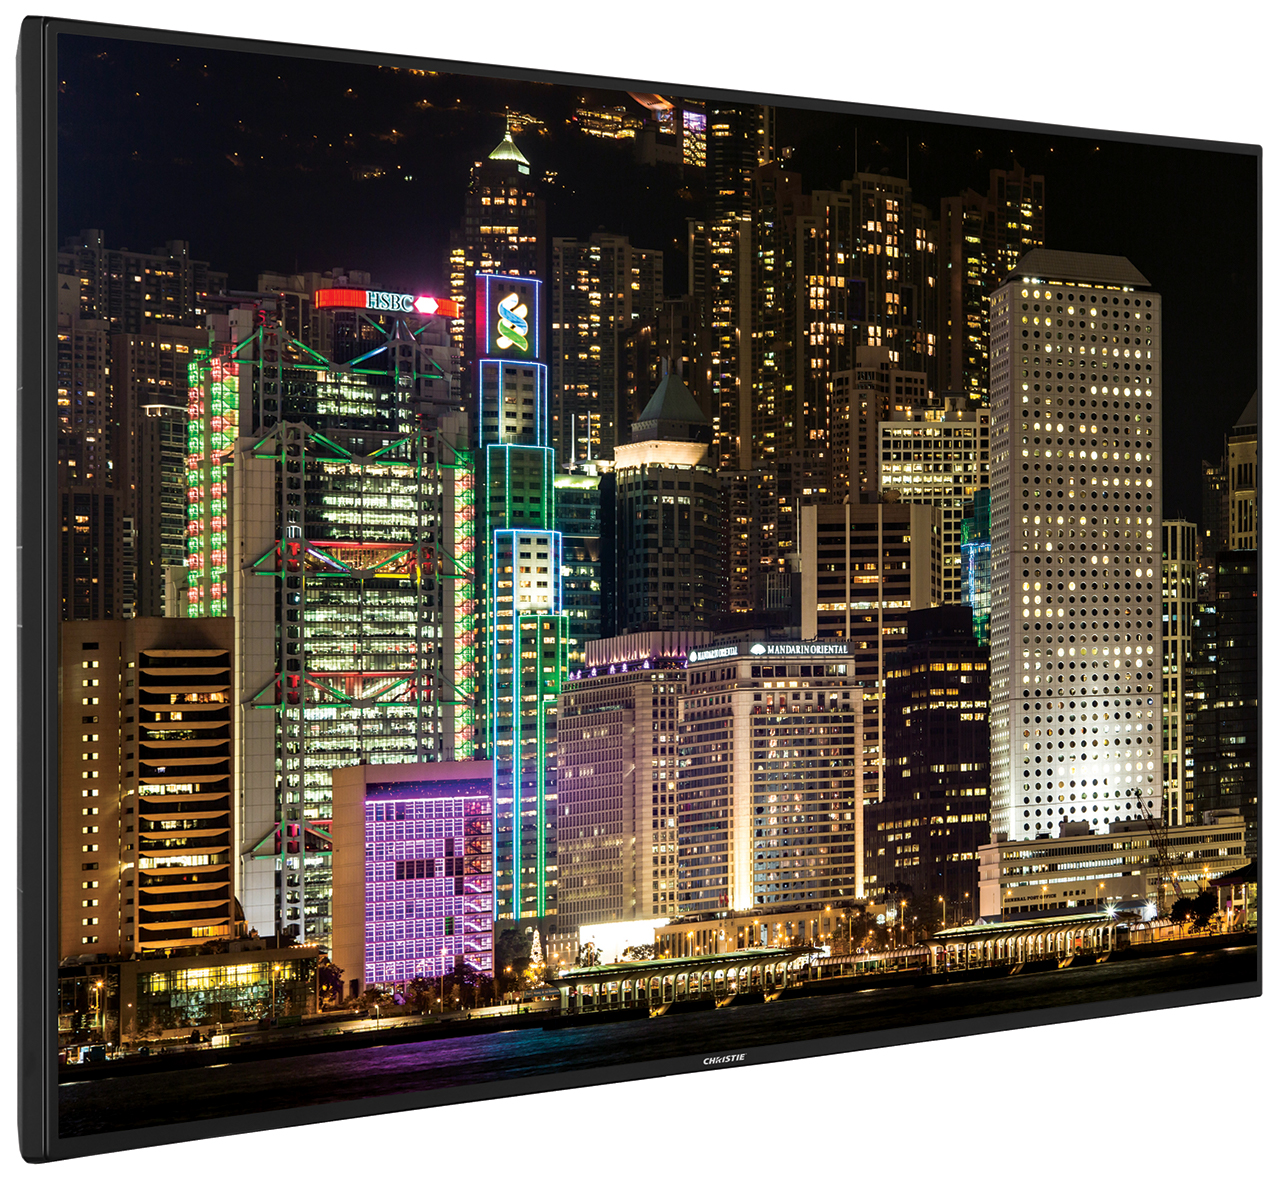 /globalassets/.catalog/products/images/christie-uhd551-l/gallery/christie-uhd551-l-low-left-city.jpg